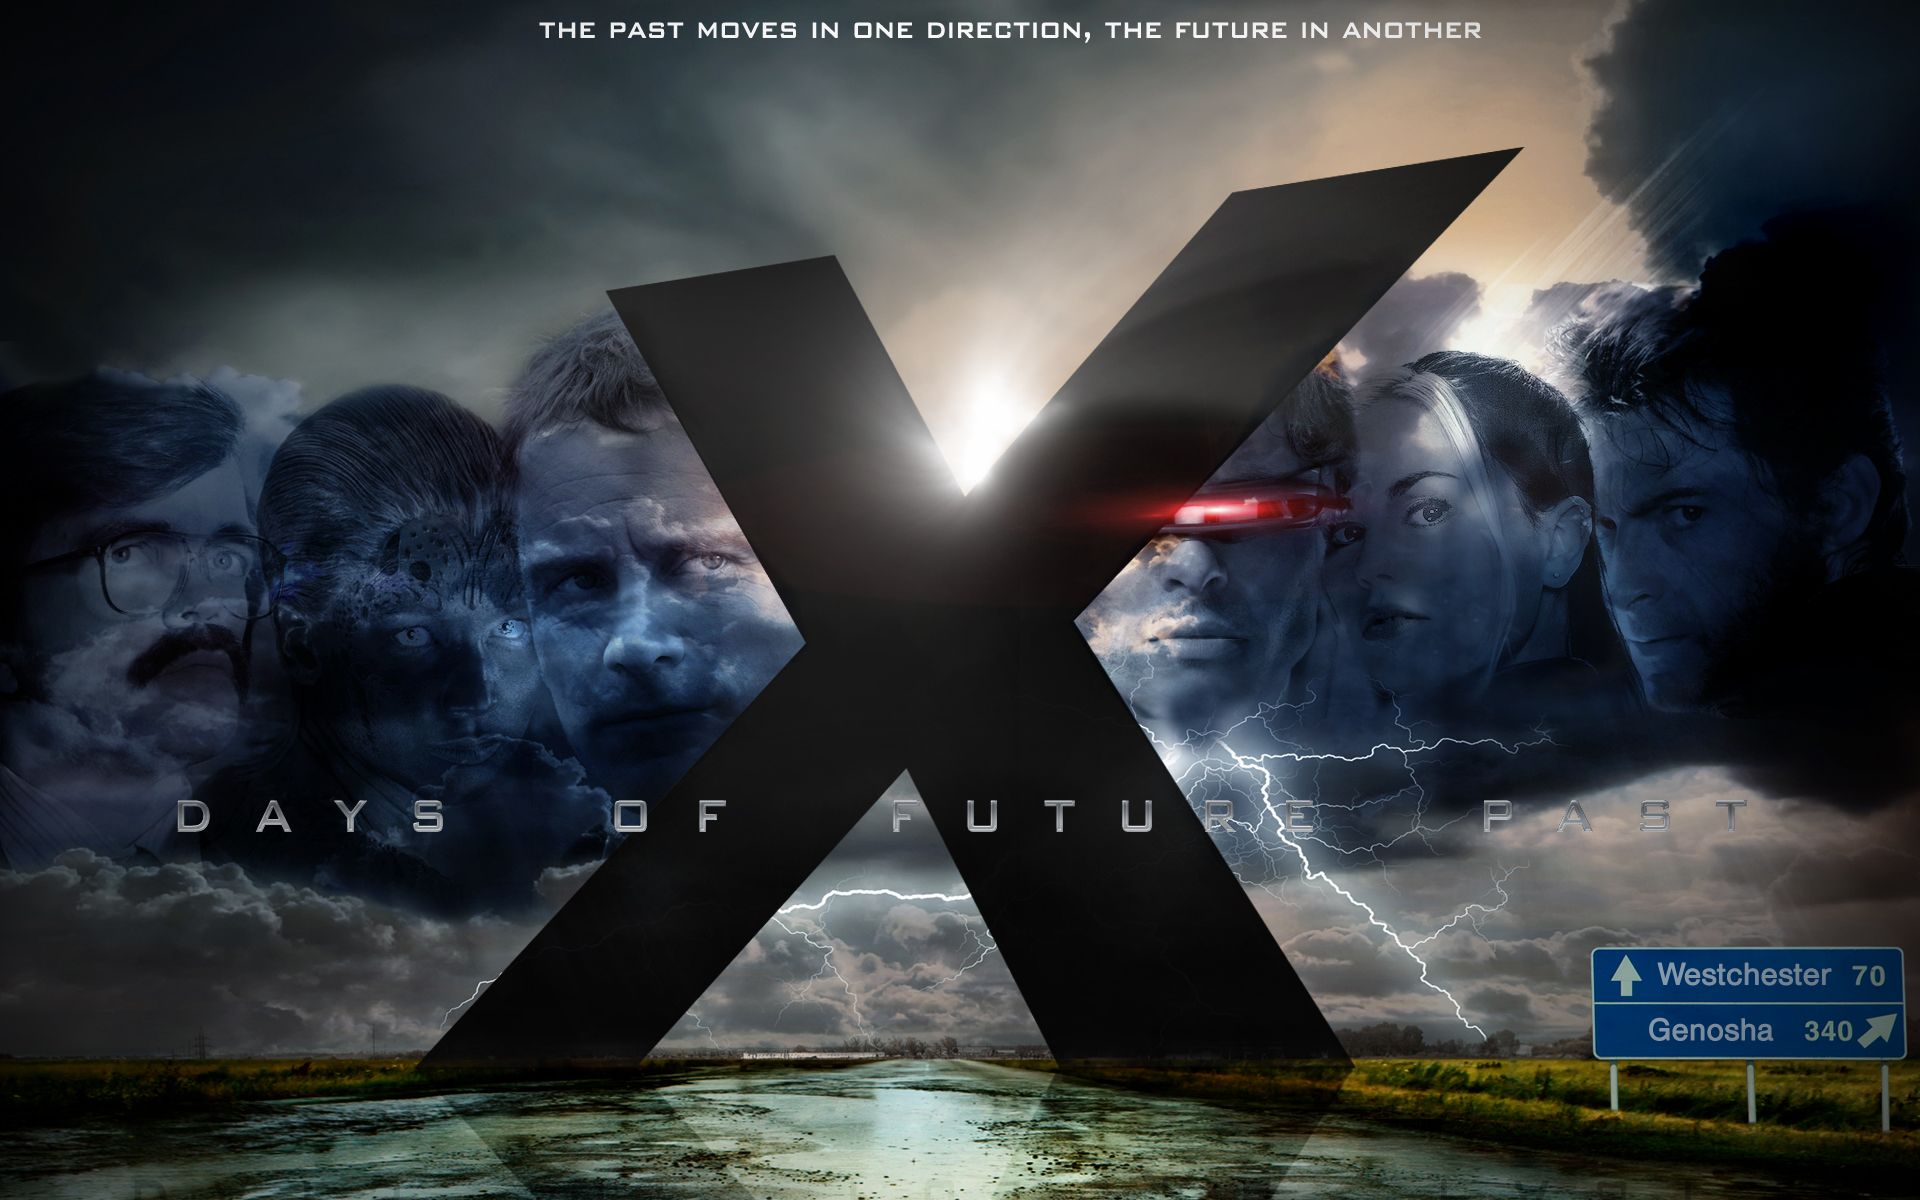 x men days of future past 2 movies to watch x men days of future past 2